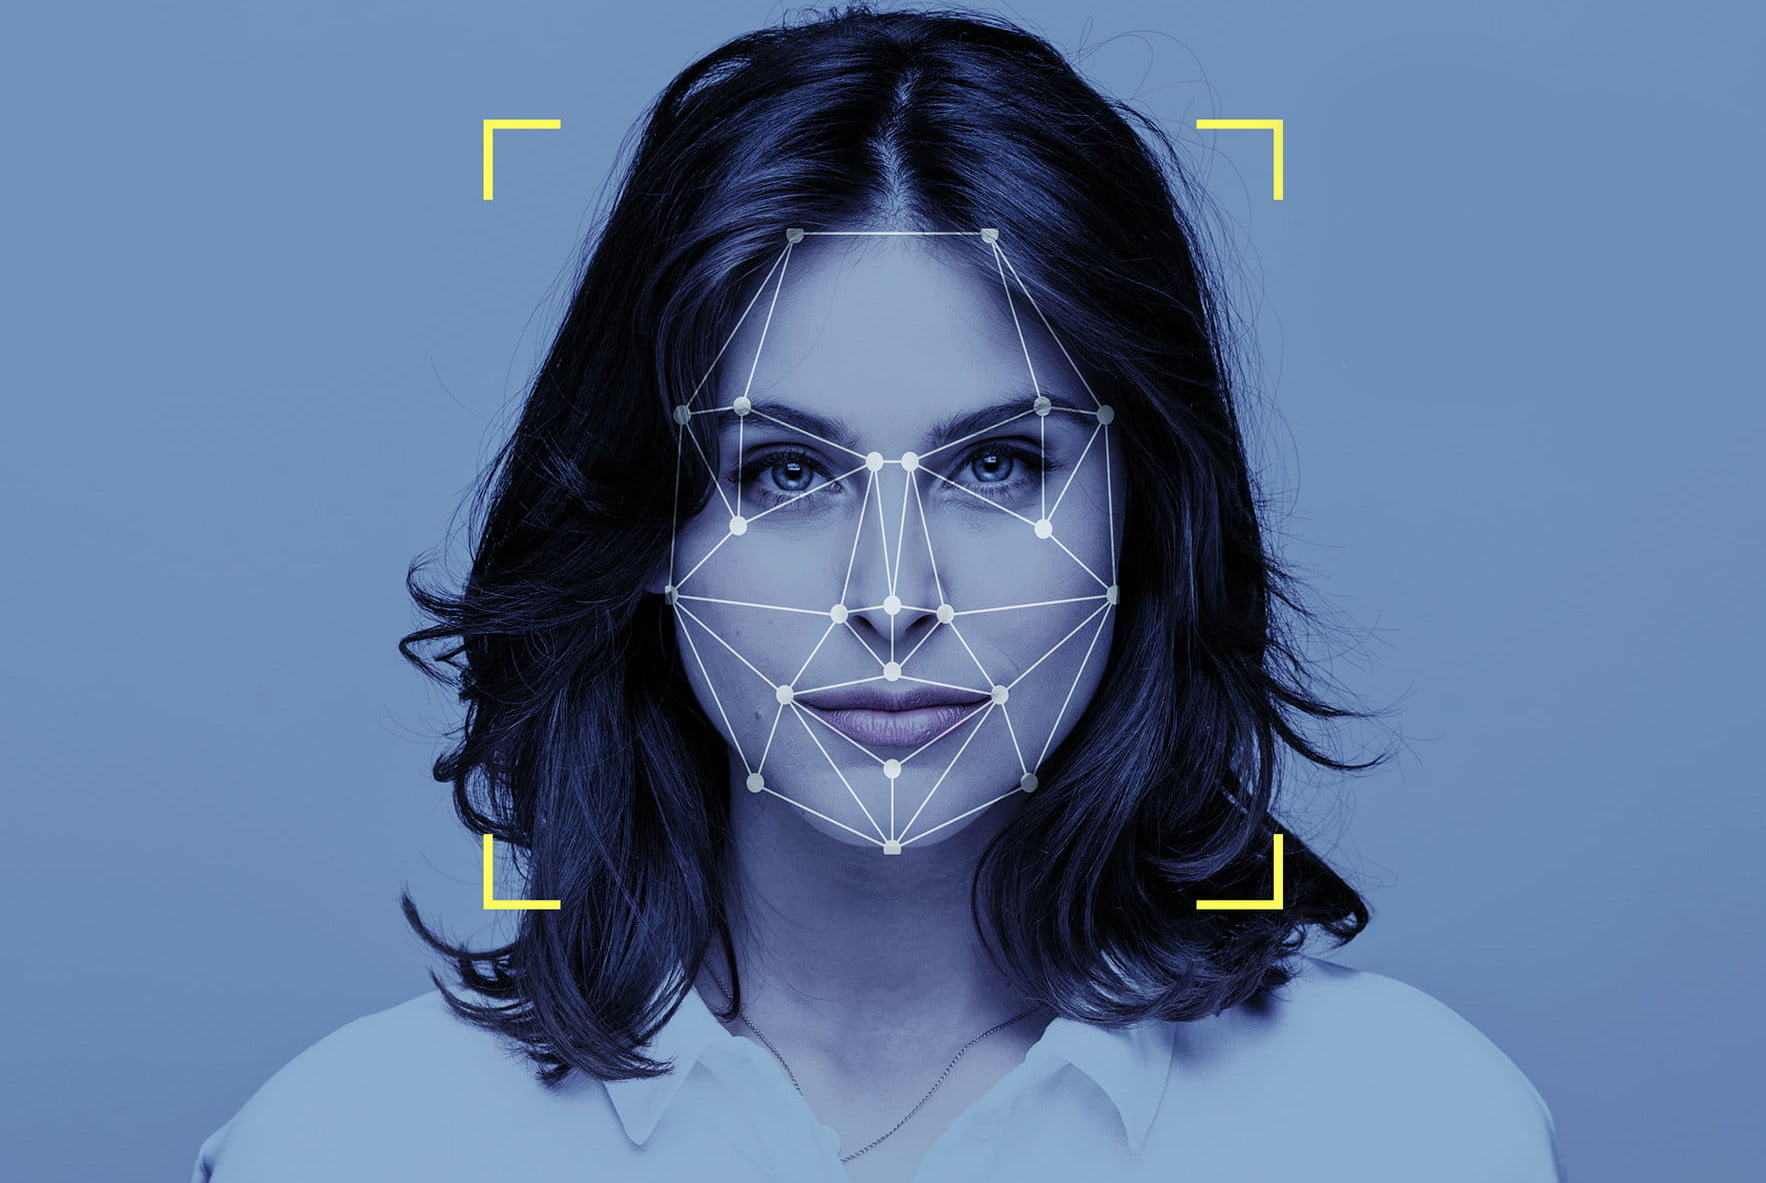 Microsoft Will No Longer Invest in Facial-Recognition Tech ...